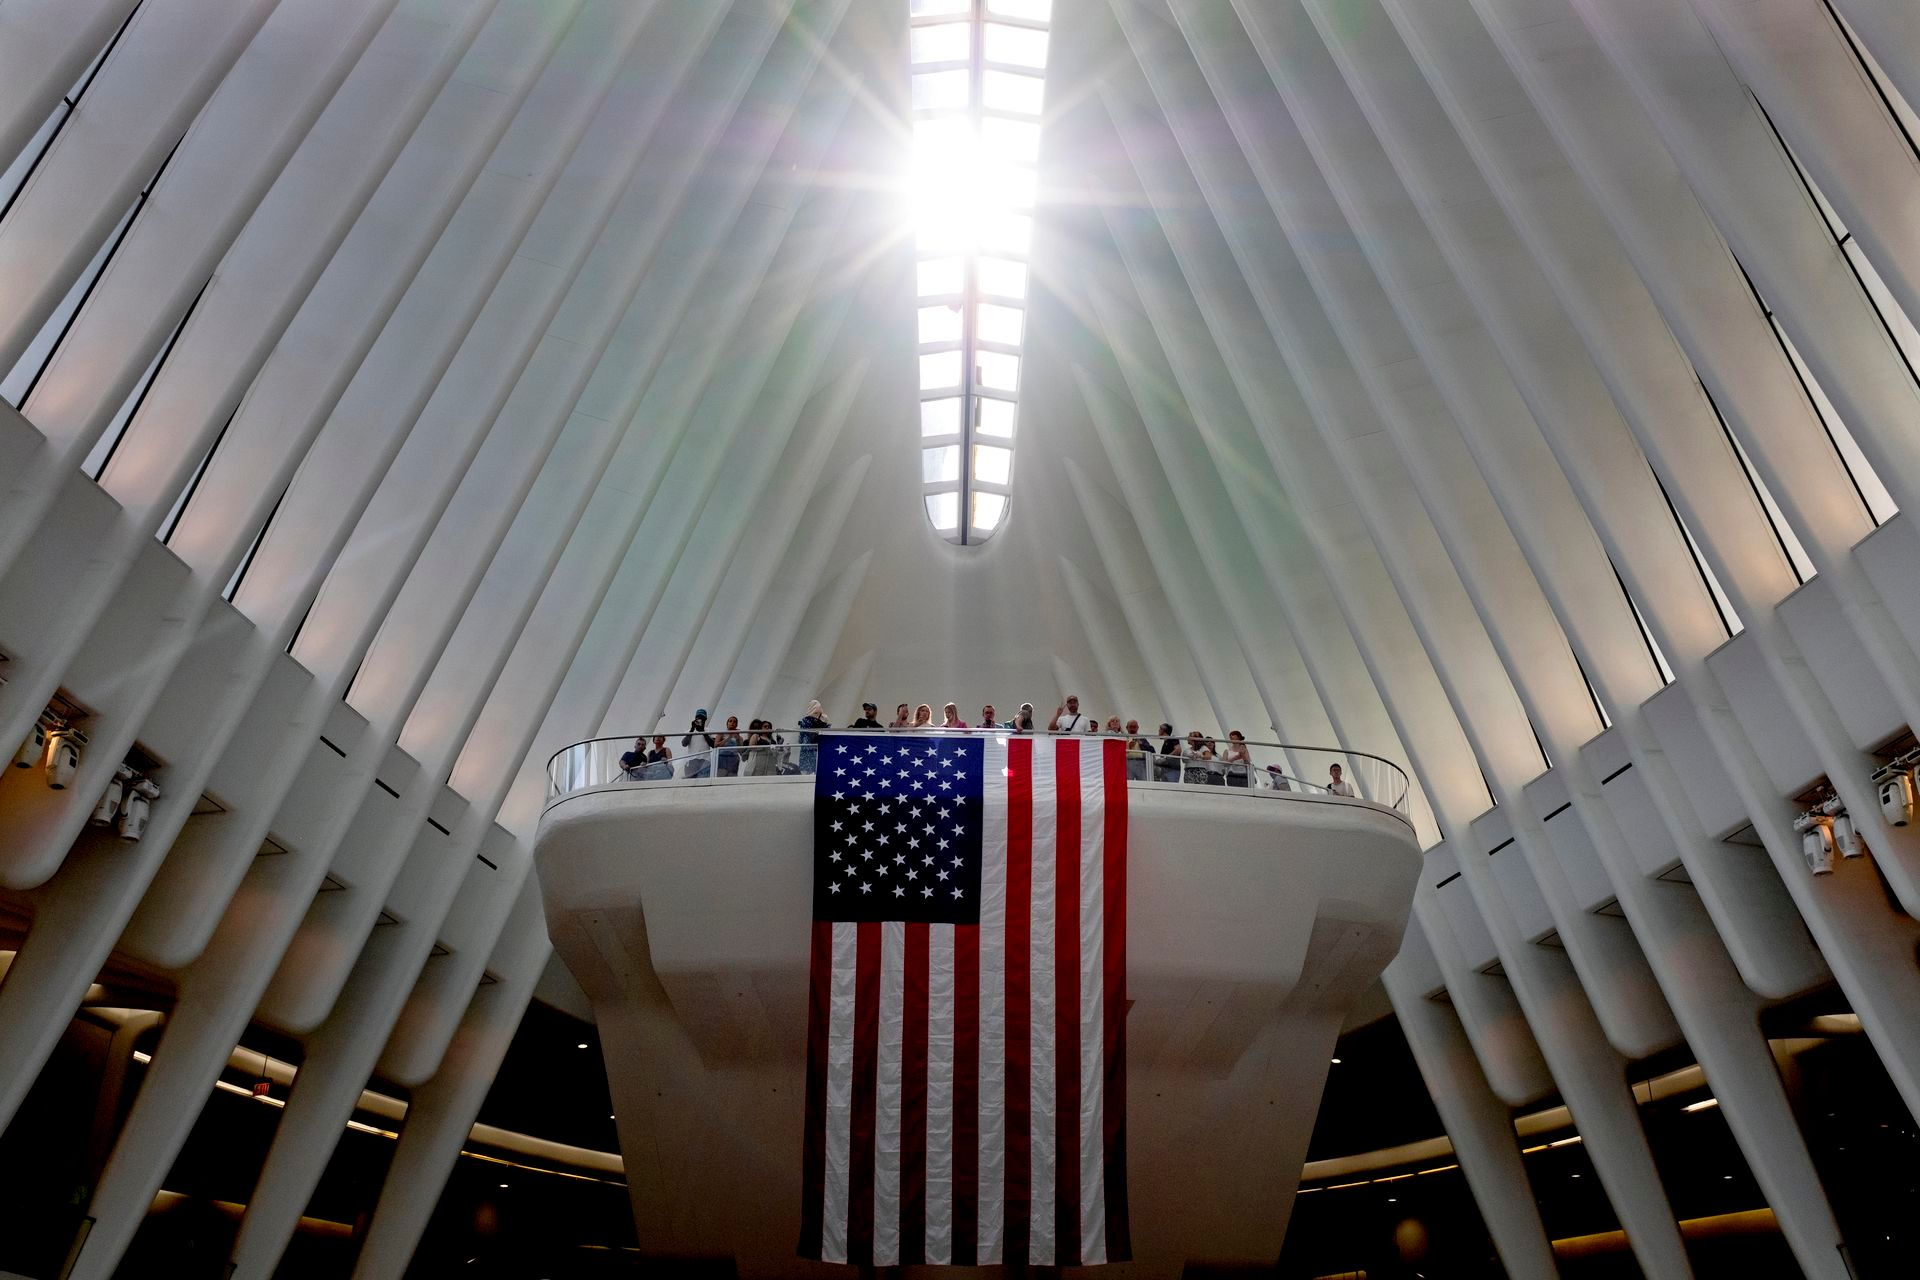 The ribbed interior of the oculus can be seen with a ray of sun shining through the center skylight